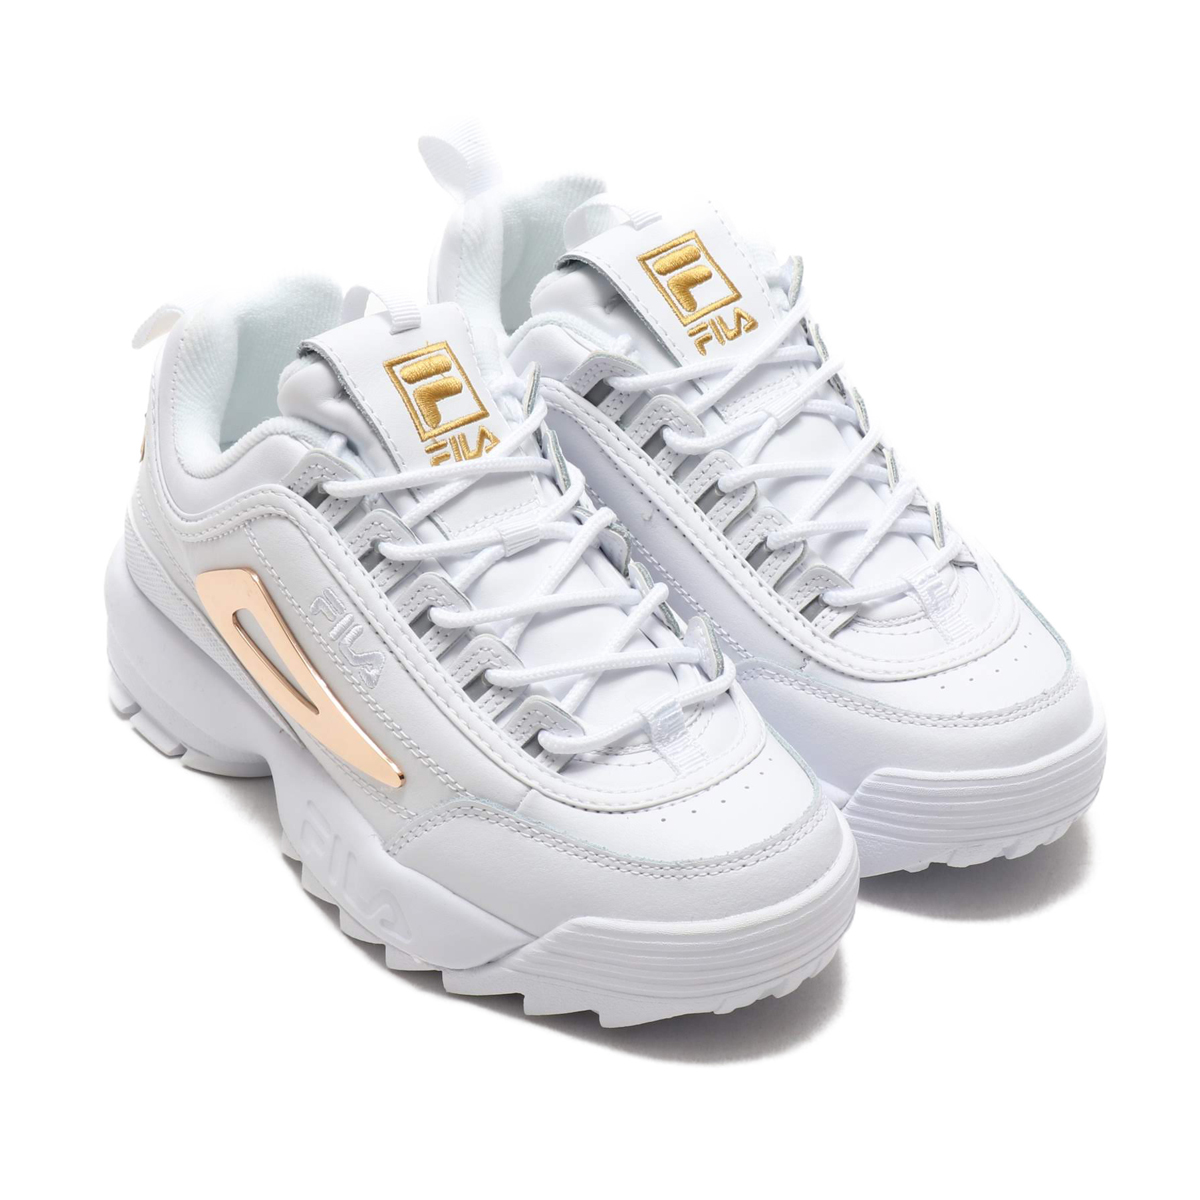 FILA DISRUPTOR 2 HARDWARE WOMENS (フィラディスラプター 2 hardware women)  WHITE/METALIC GOLD/WHITE 19SS-S